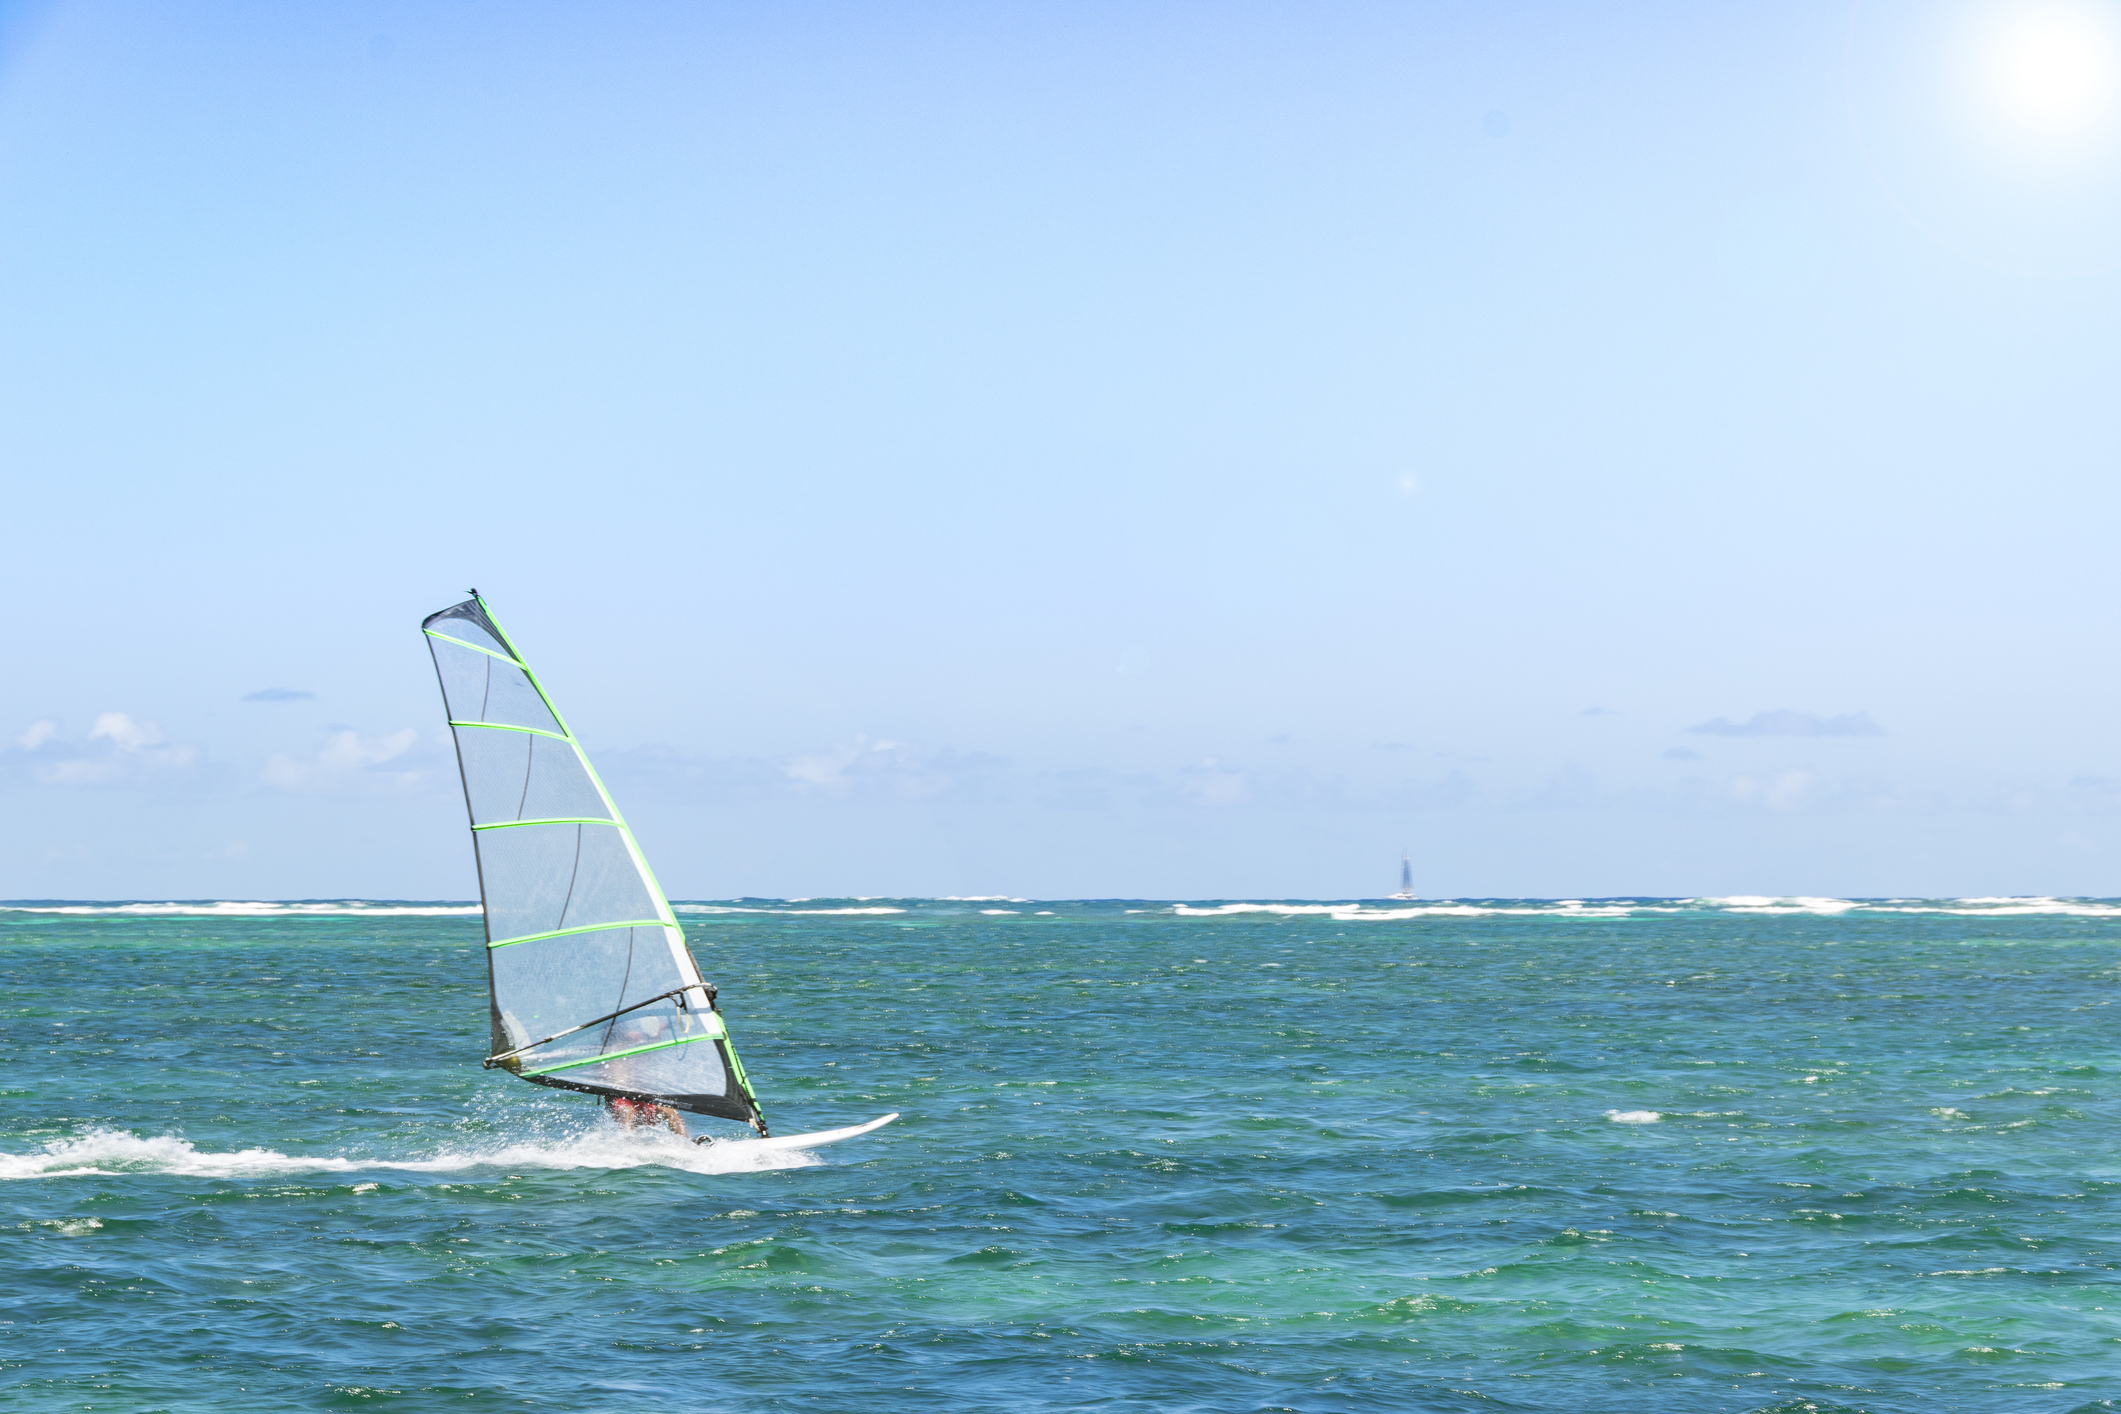 Windsurfing. Windsurfer Surfing The Wind On Waves In Ocean, Sea. Extreme Sport Action. Recreational Sporting Activity. Healthy Active Lifestyle